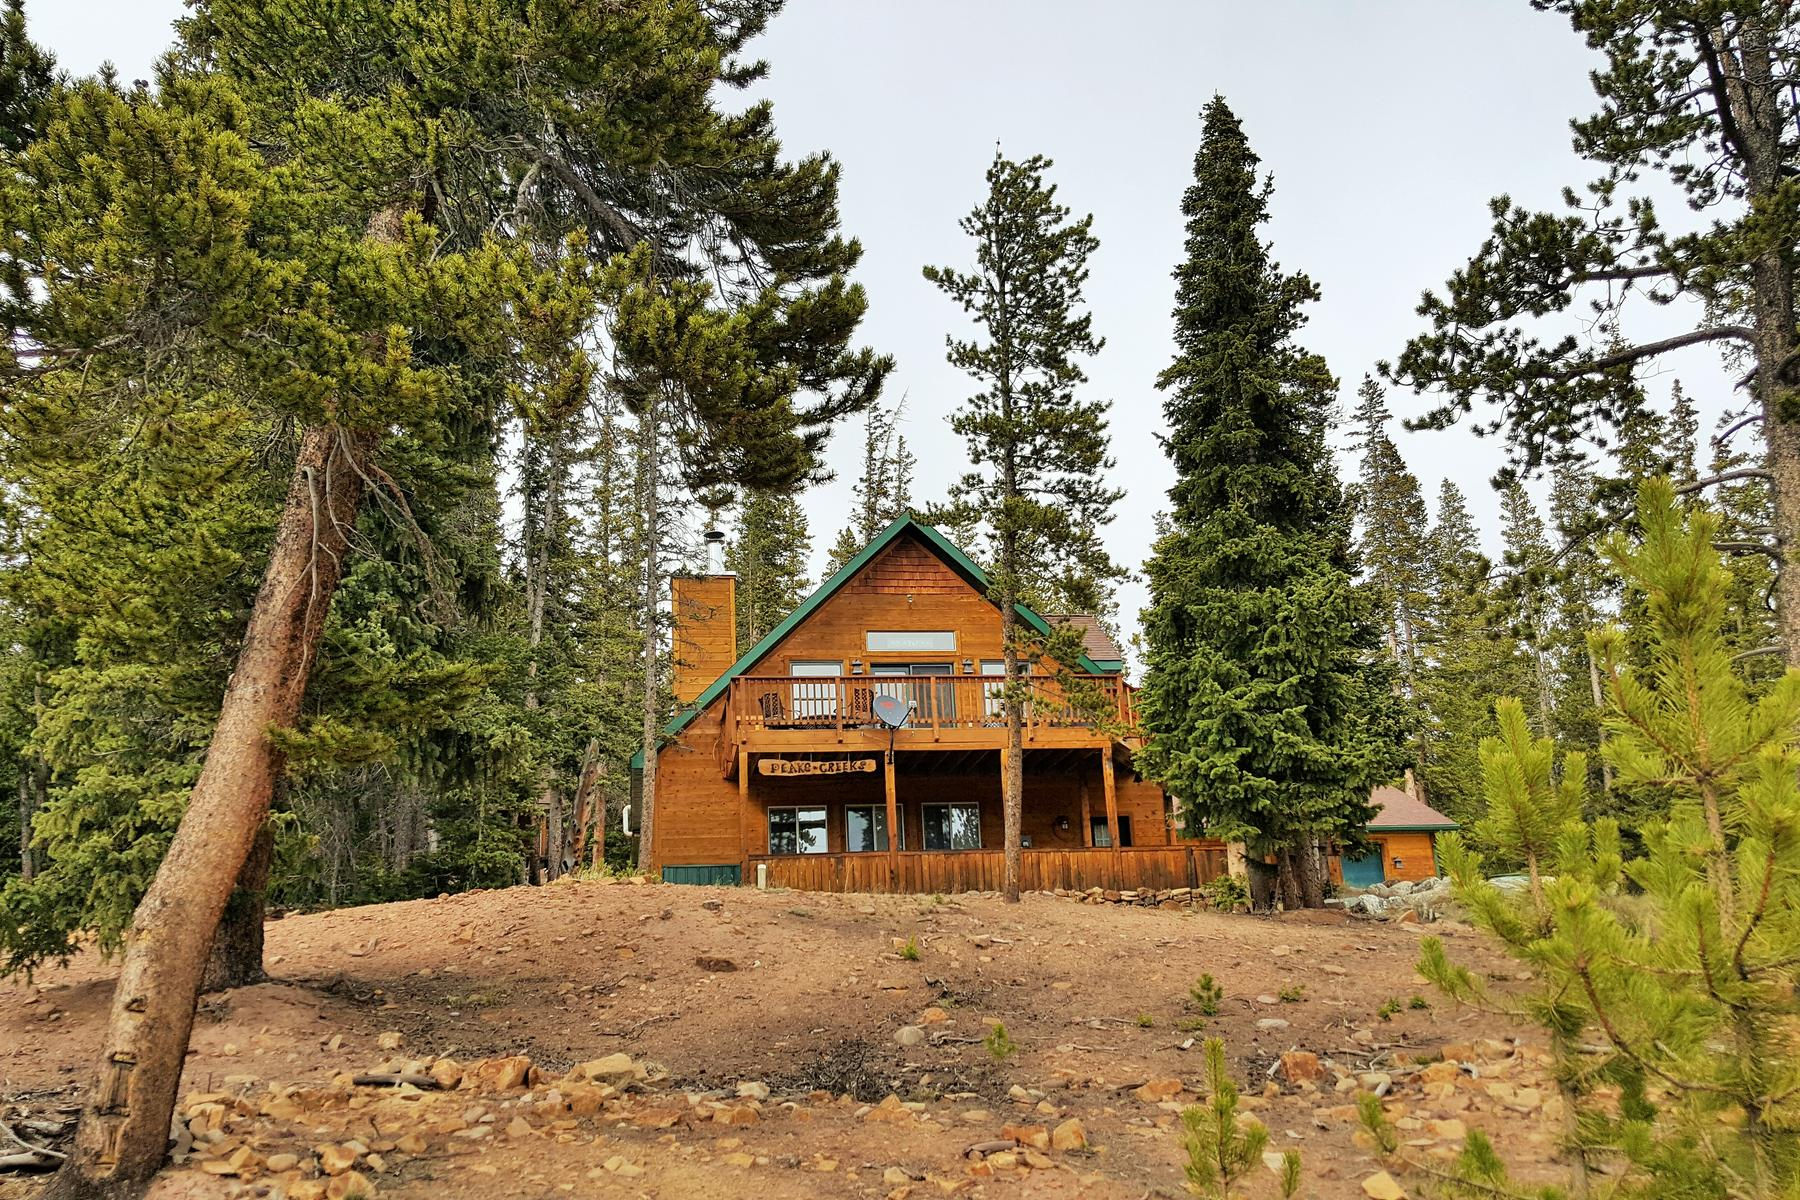 Single Family Home for Active at A Nature Lover's Paradise 3253 CO Road 14A Fairplay, Colorado 80440 United States